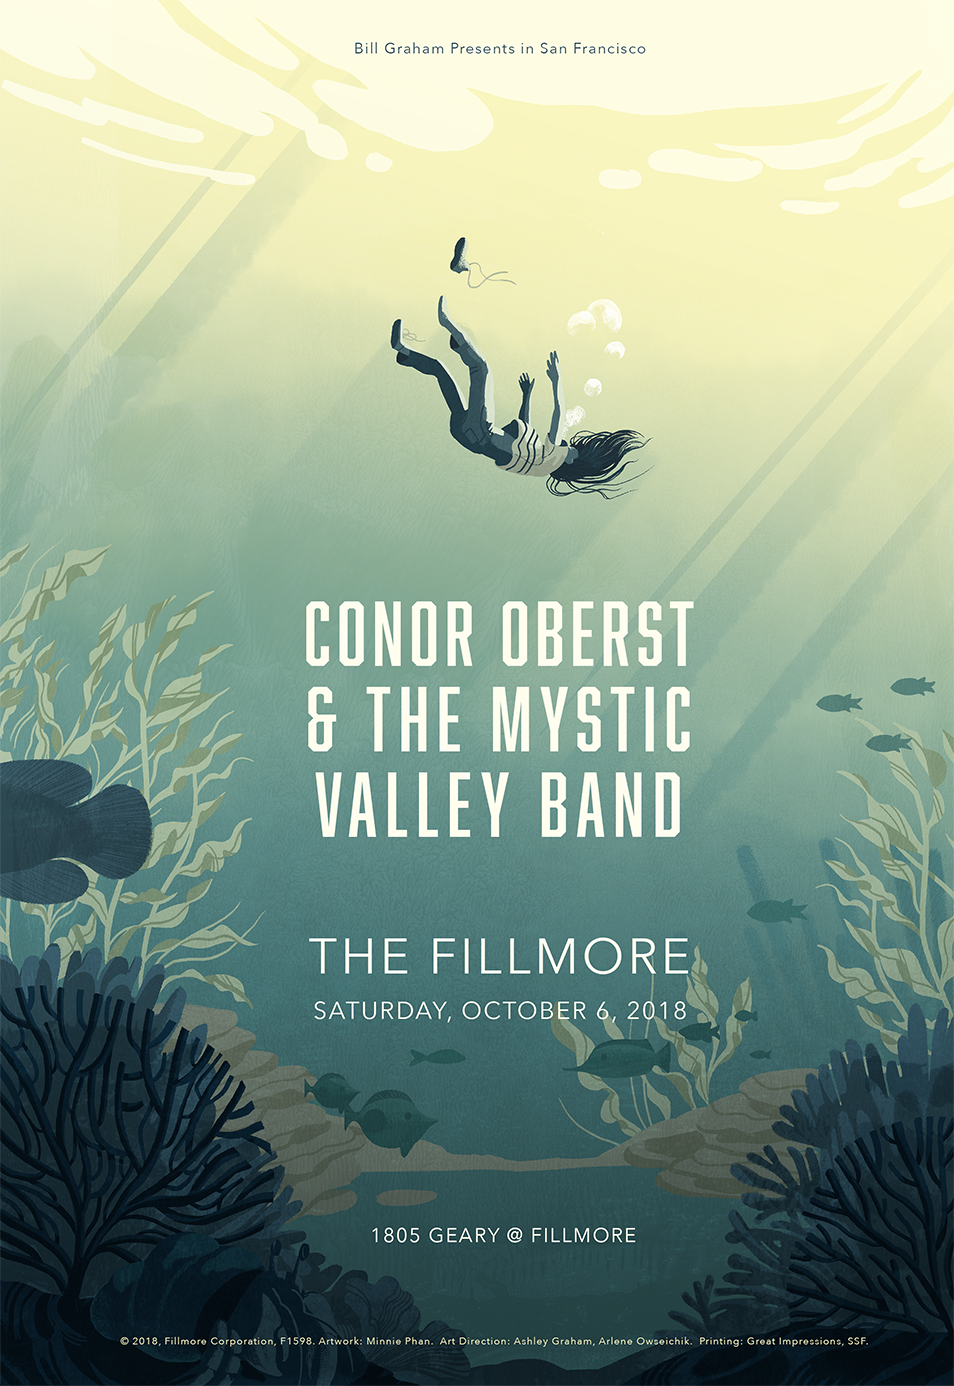 Conor Oberst & The Mystic Valley Band